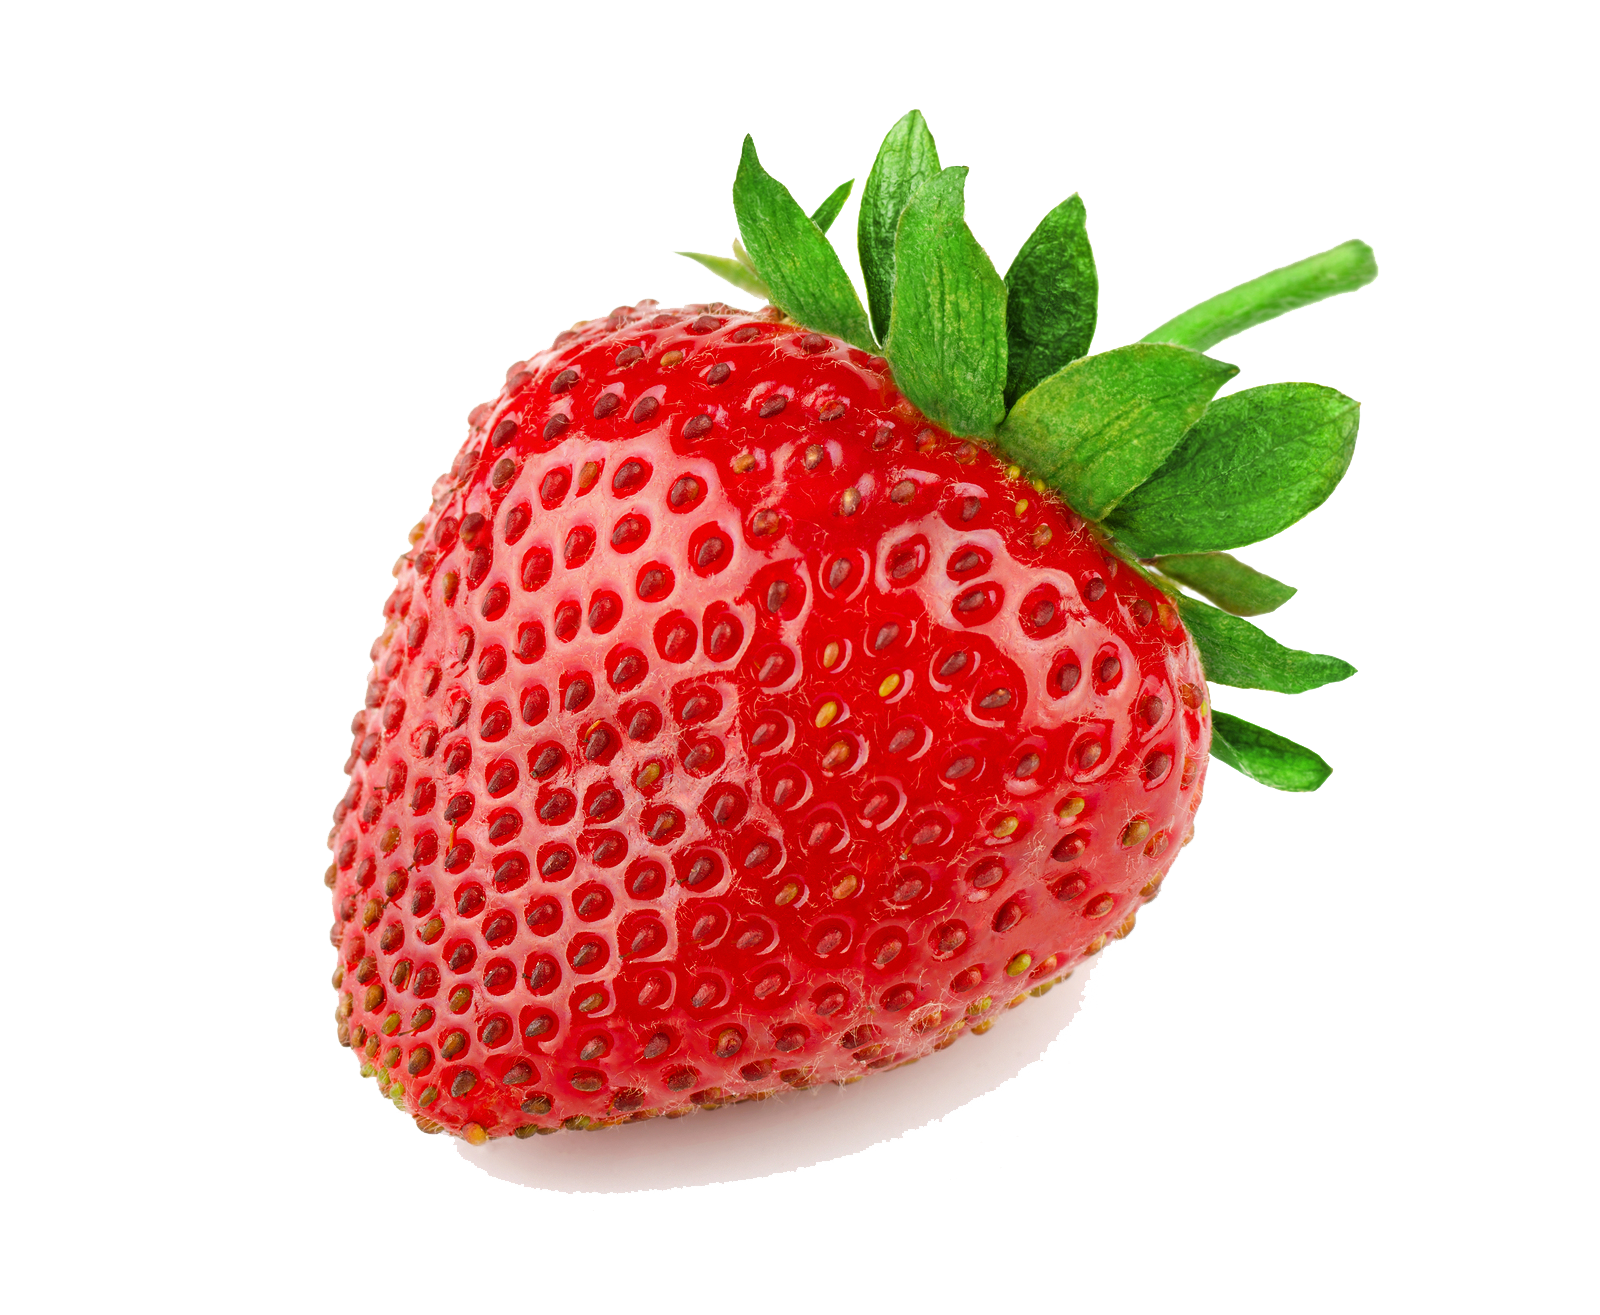 Strawberry Png PNG Image